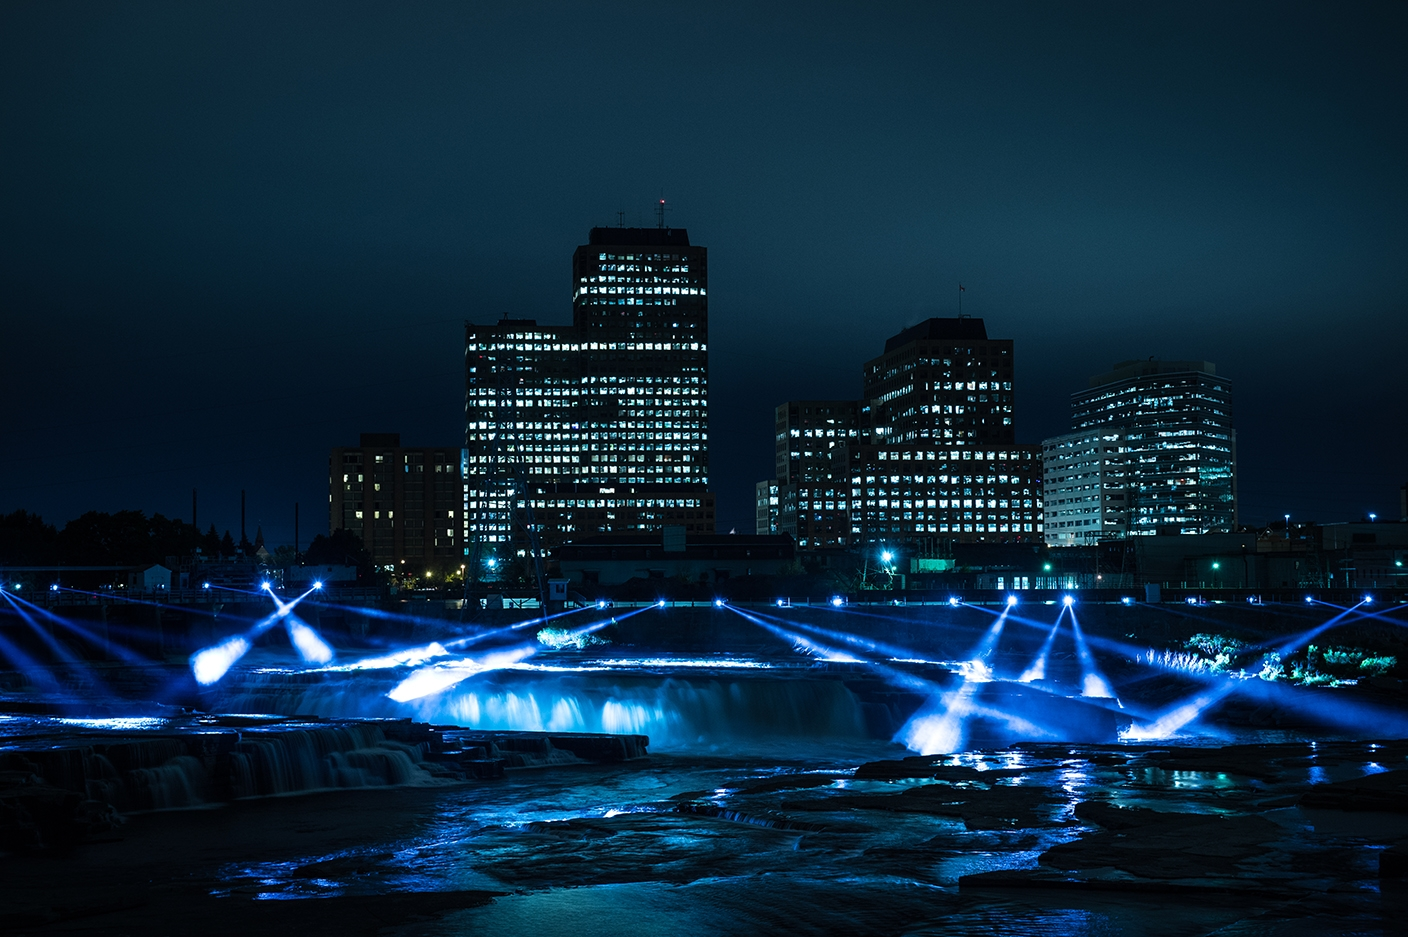 Chaudière Falls Powerhouse (Generating Station No. 5) – Night